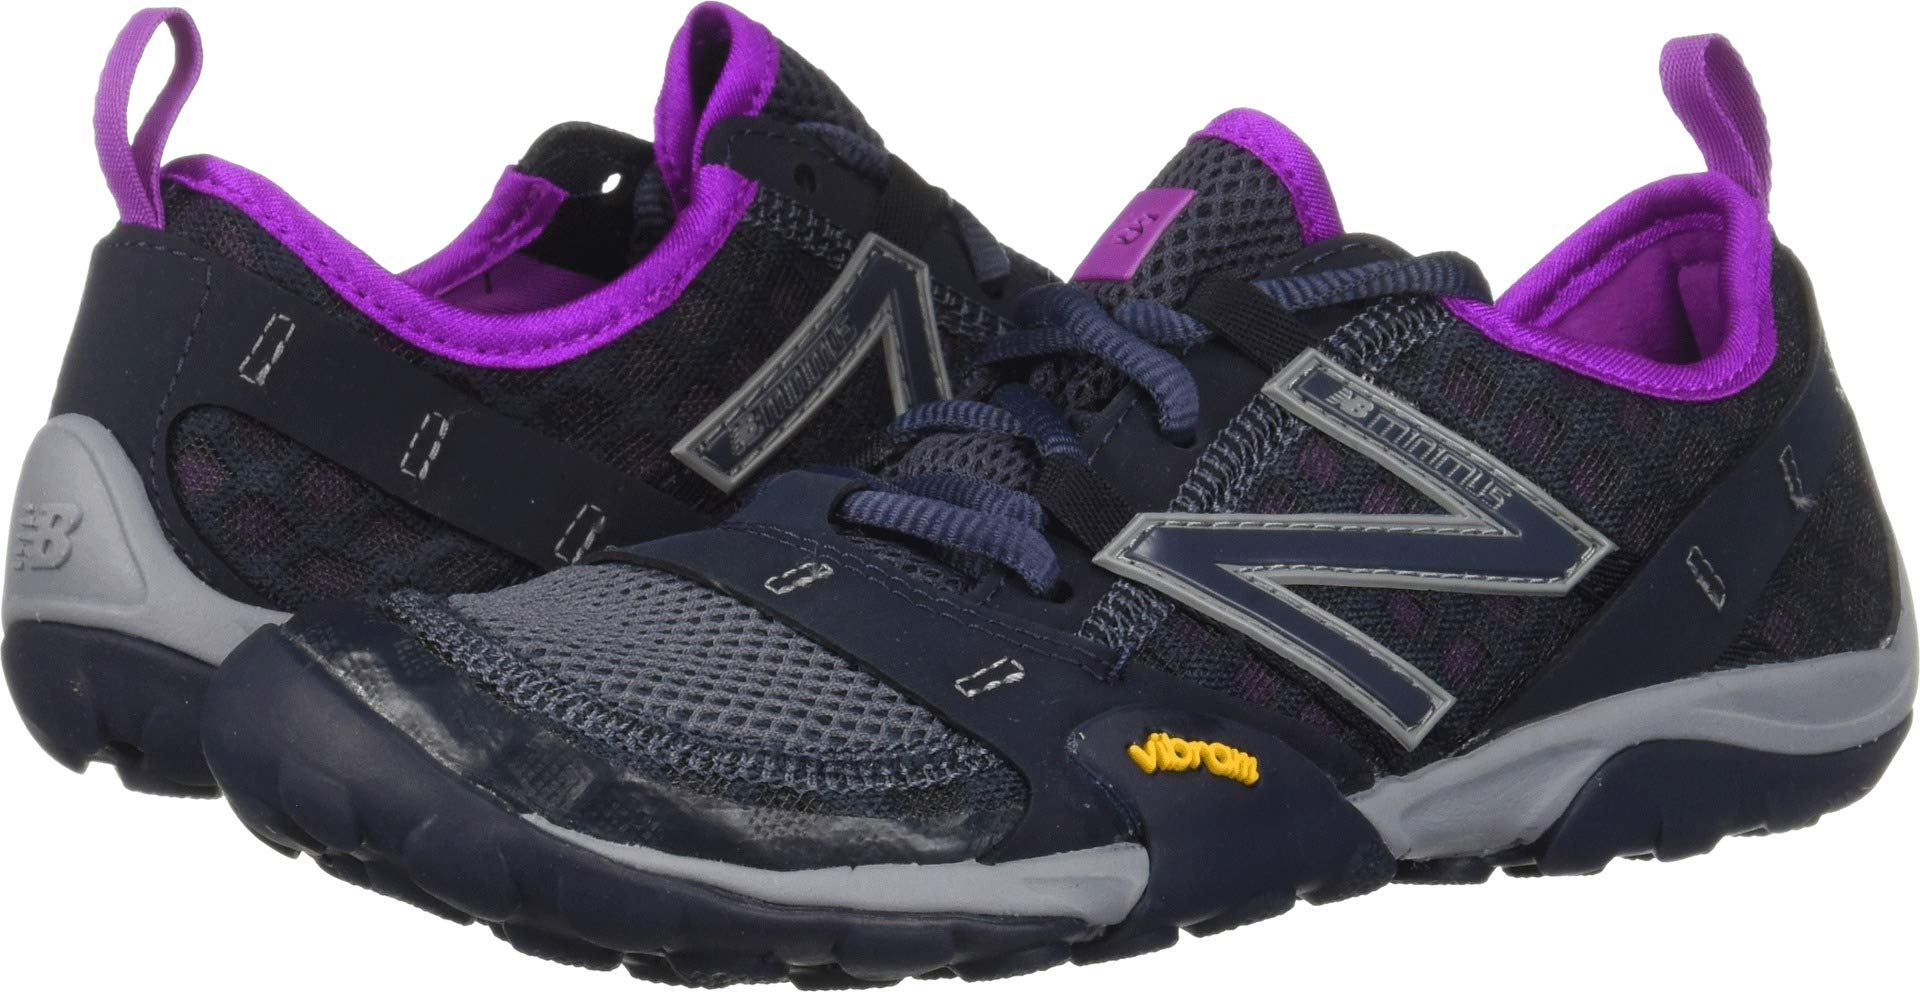 New Balance Women's 10v1 Minimus Trail Running Shoe, Outerspace/Voltage Violet, 8.5 B US by New Balance